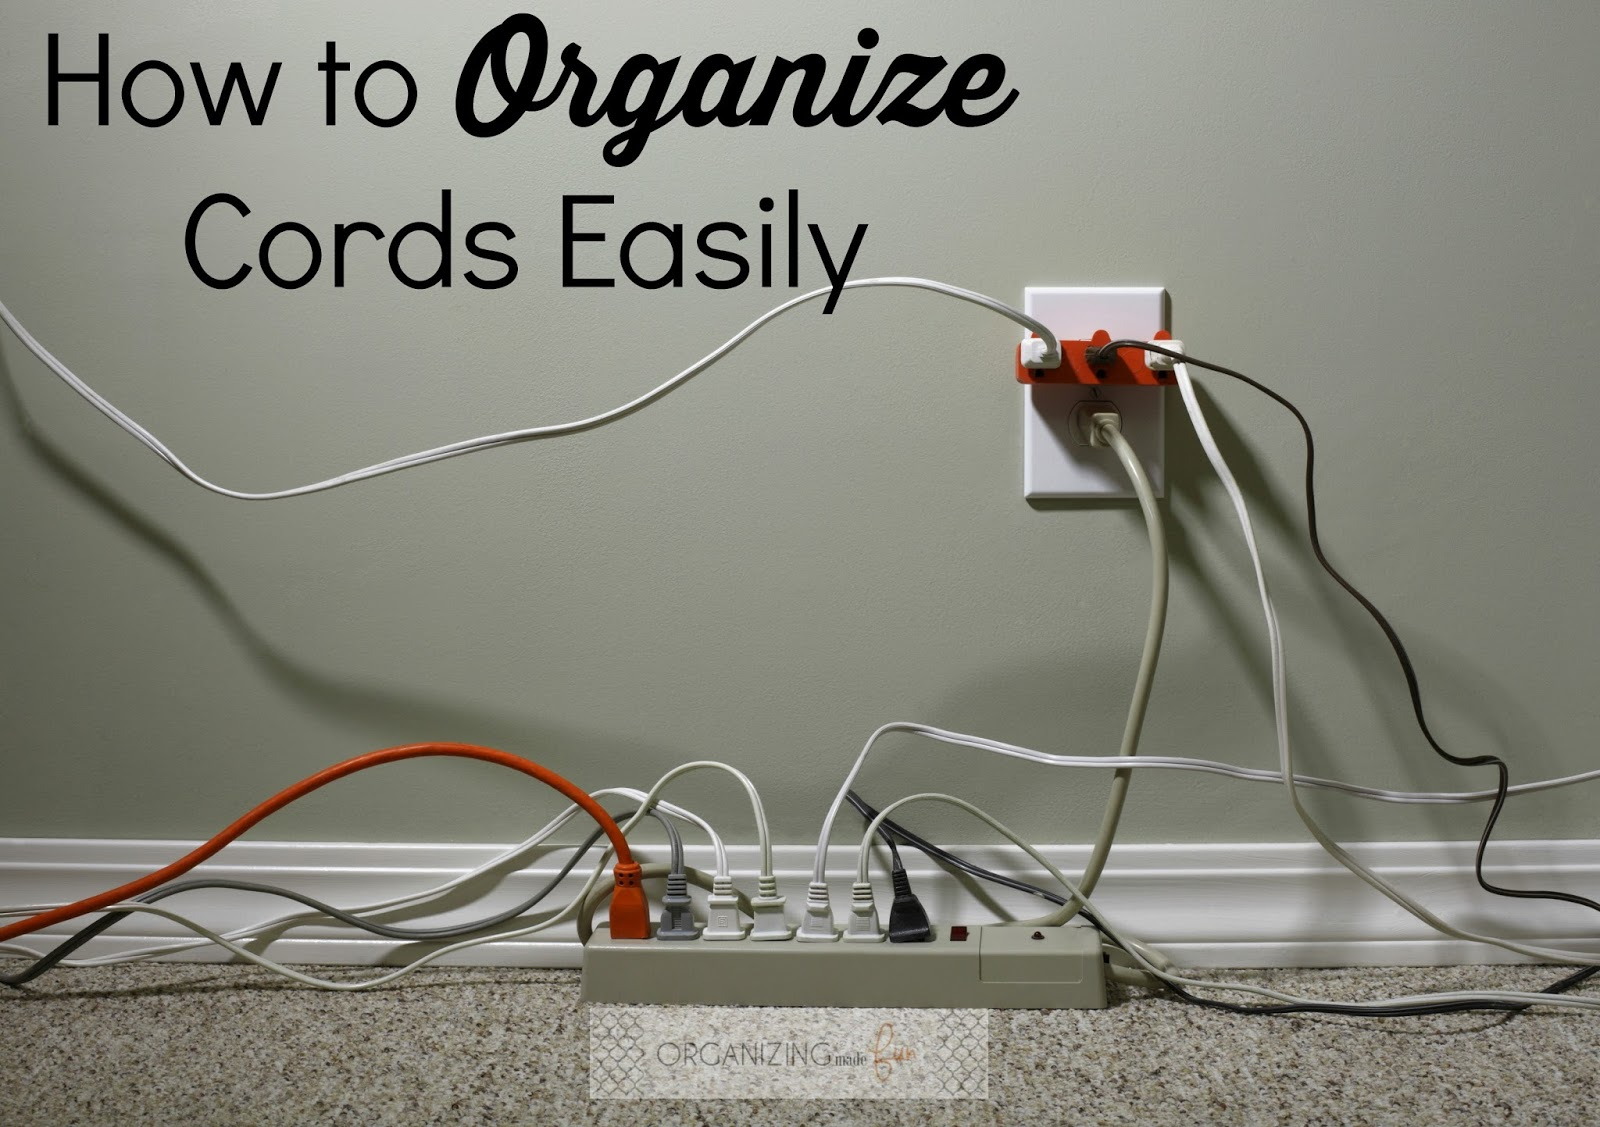 How to Organize Cords Easily | Organizing Made Fun: How to Organize ...